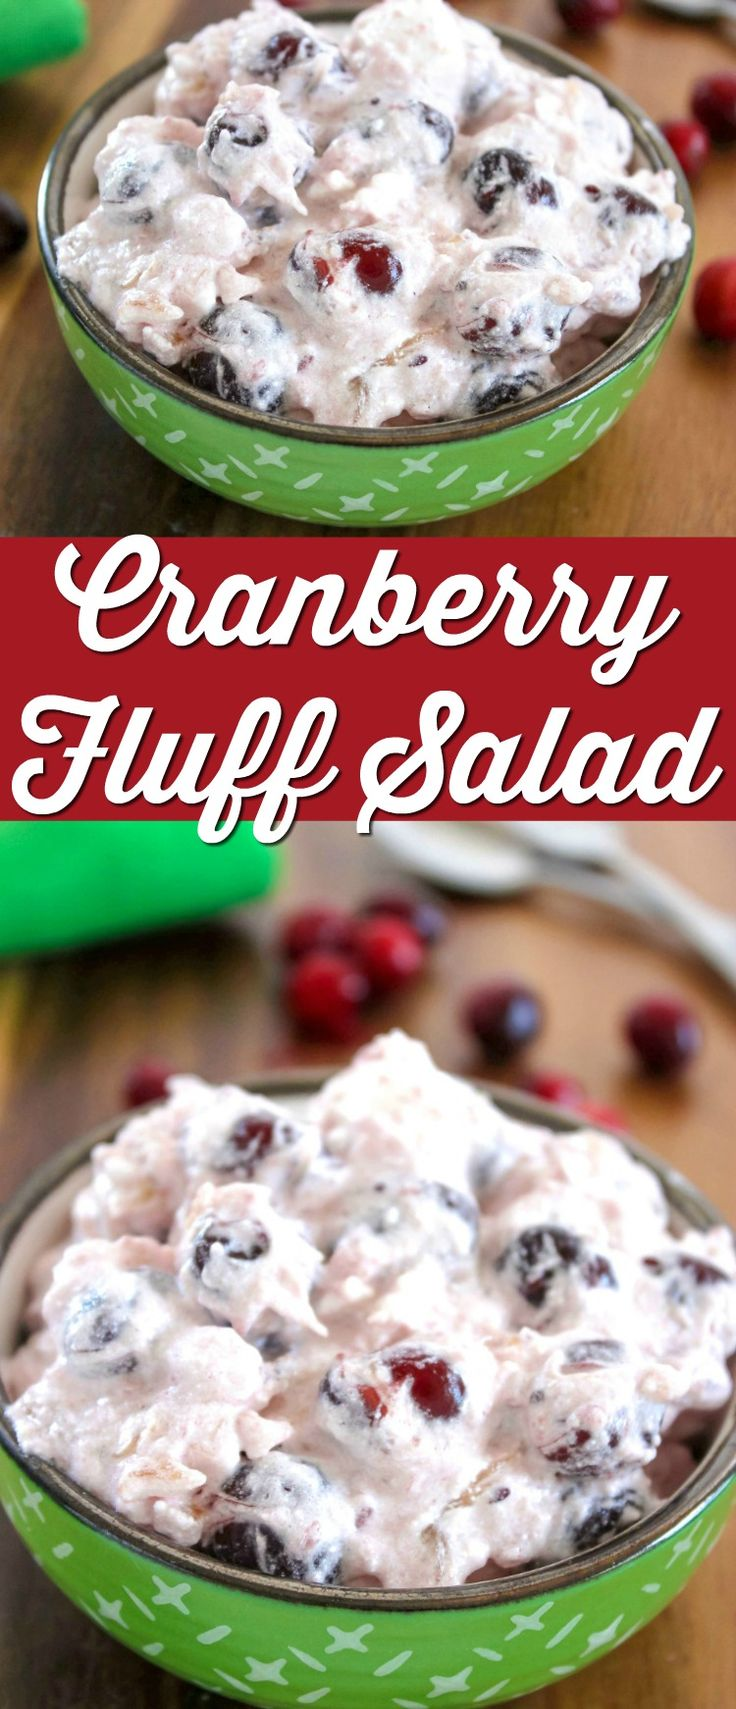 Cranberry Fluff Salad Recipe - Perfect holiday side dish or dessert